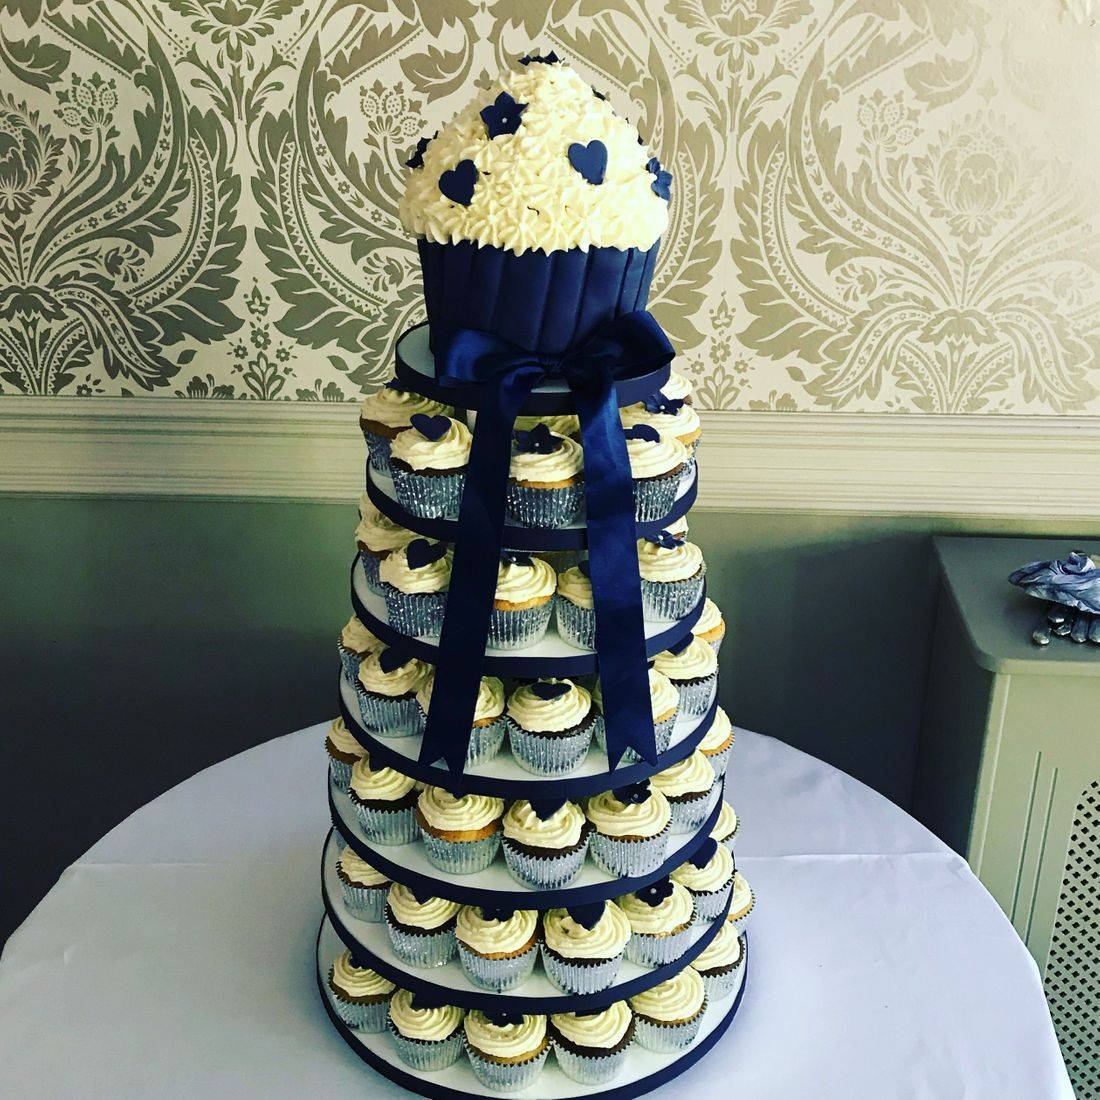 Giant Cupcake Tower Wedding Cake Fabu-Lous Cakes